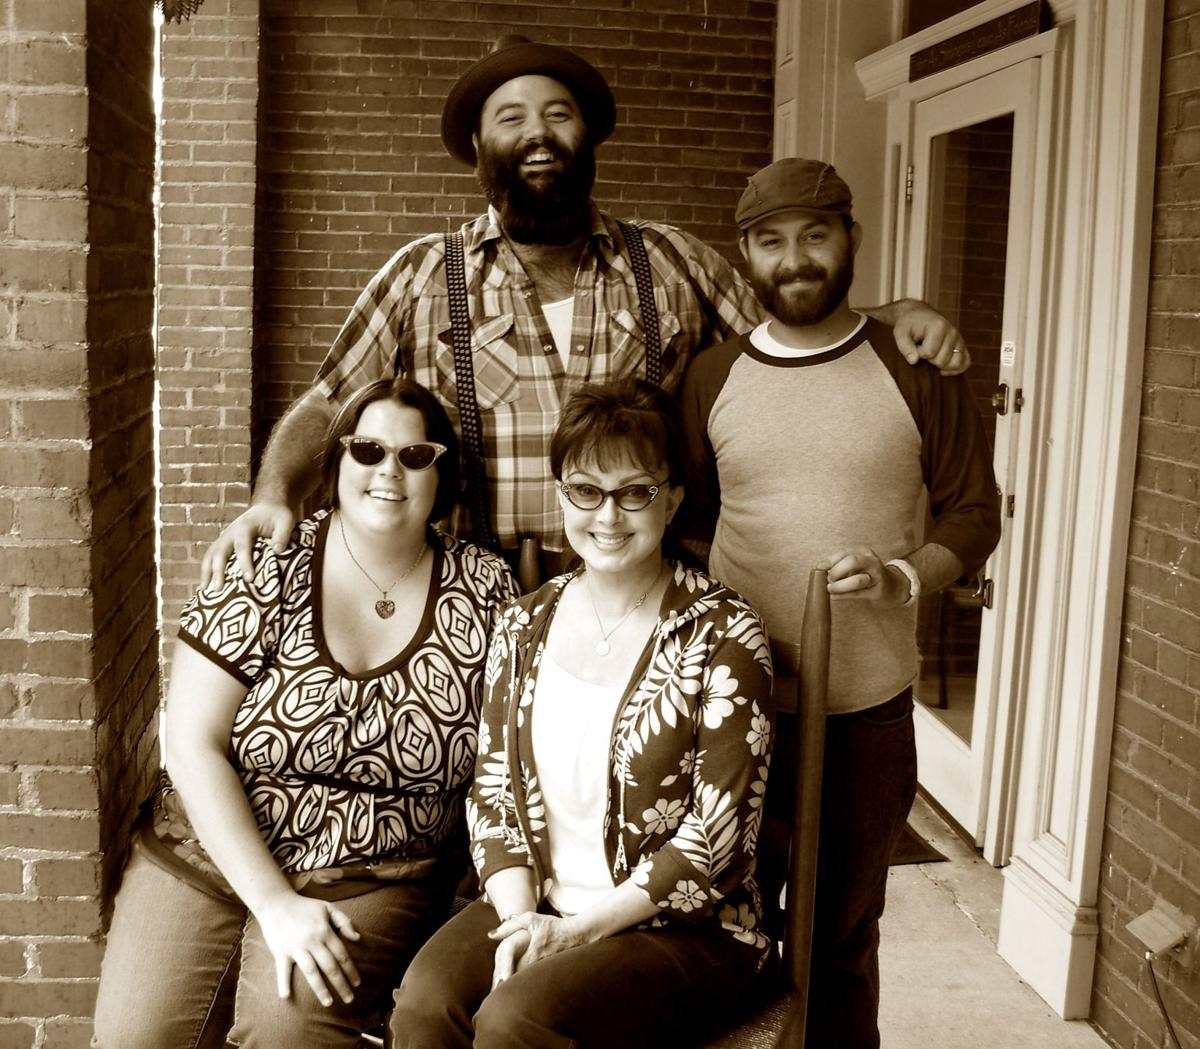 Banned from Canada: Rev. Peyton's Big Damn Band